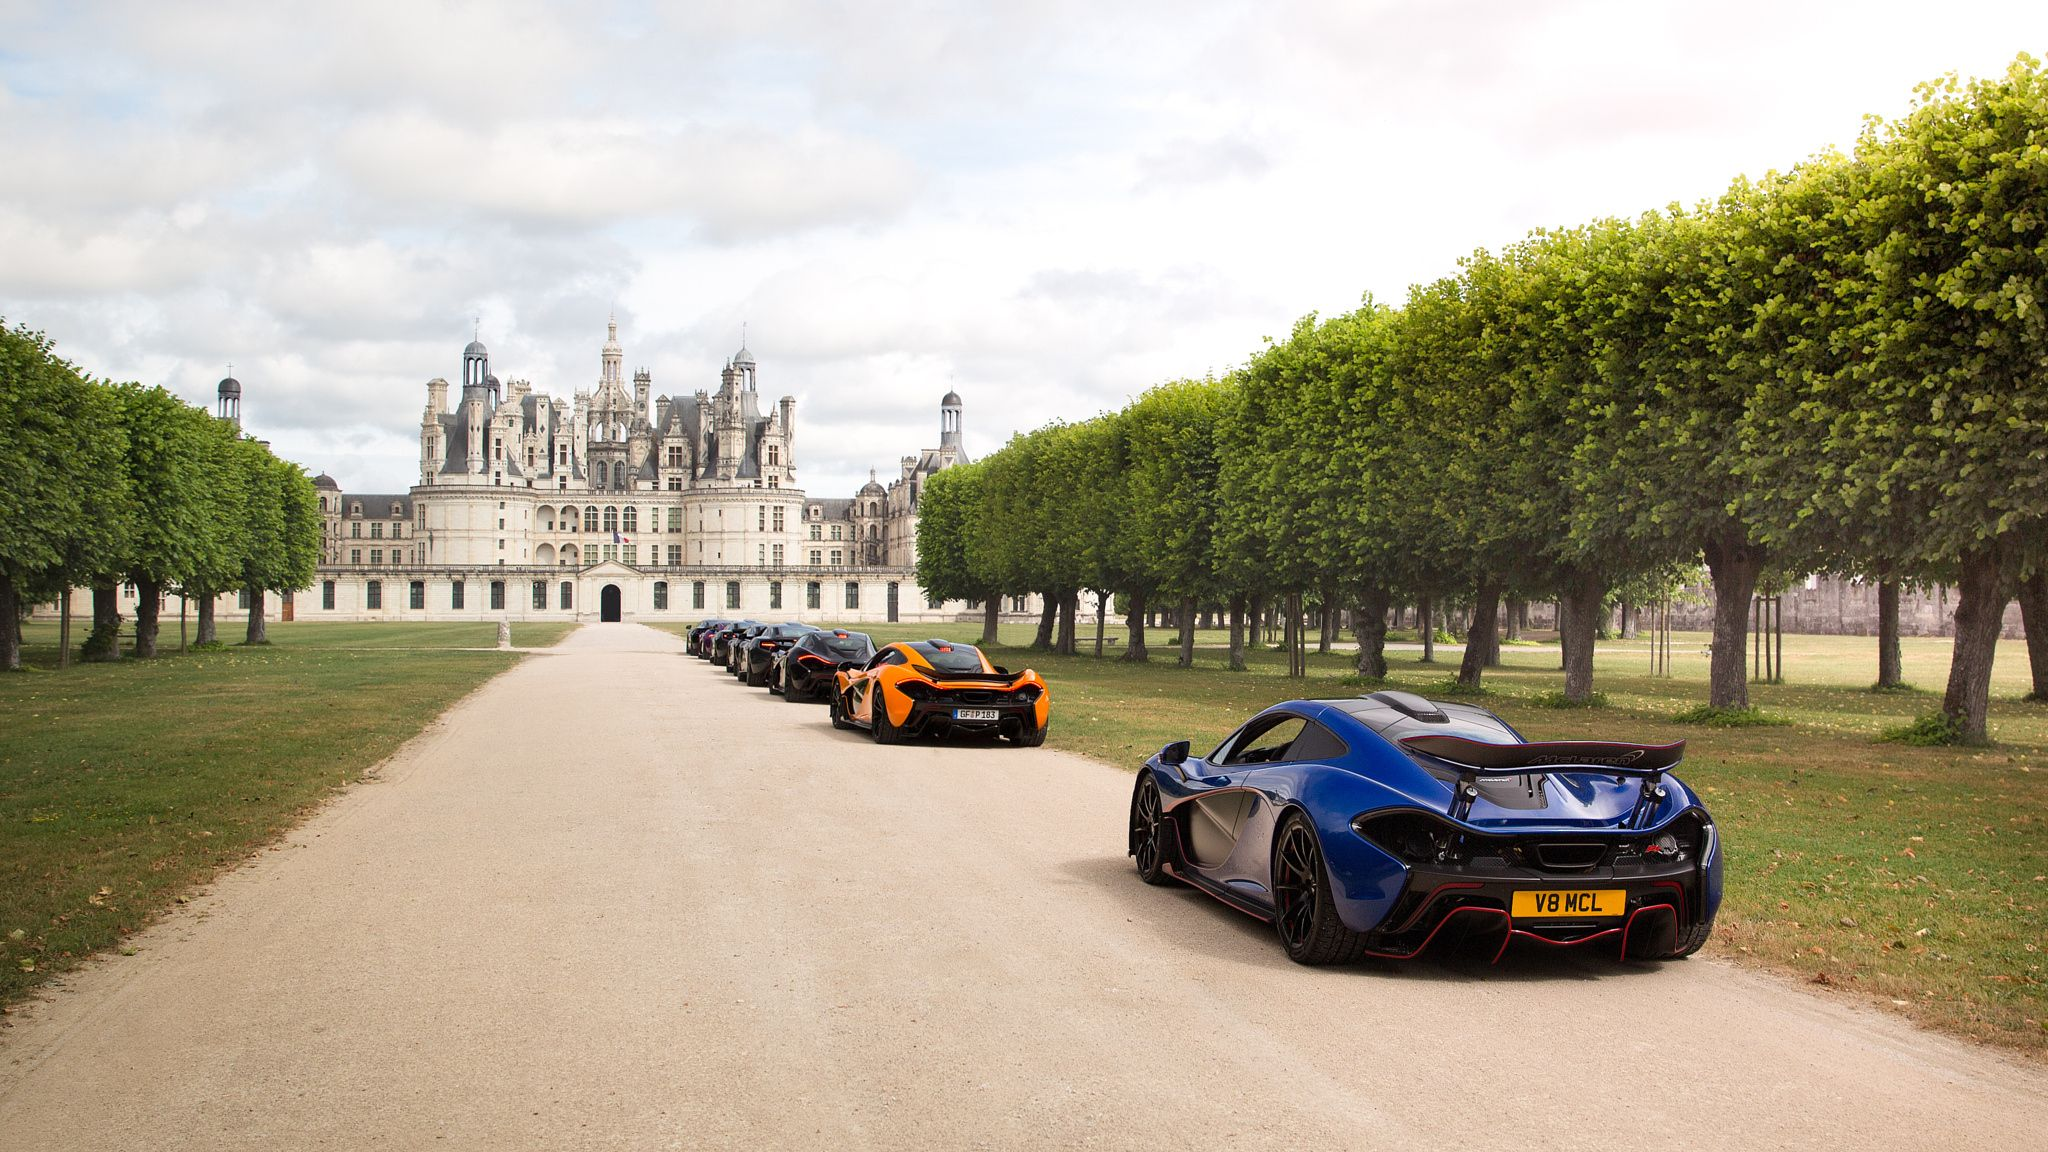 Mclarens at Château de Chambord by Sam Moores on 500px